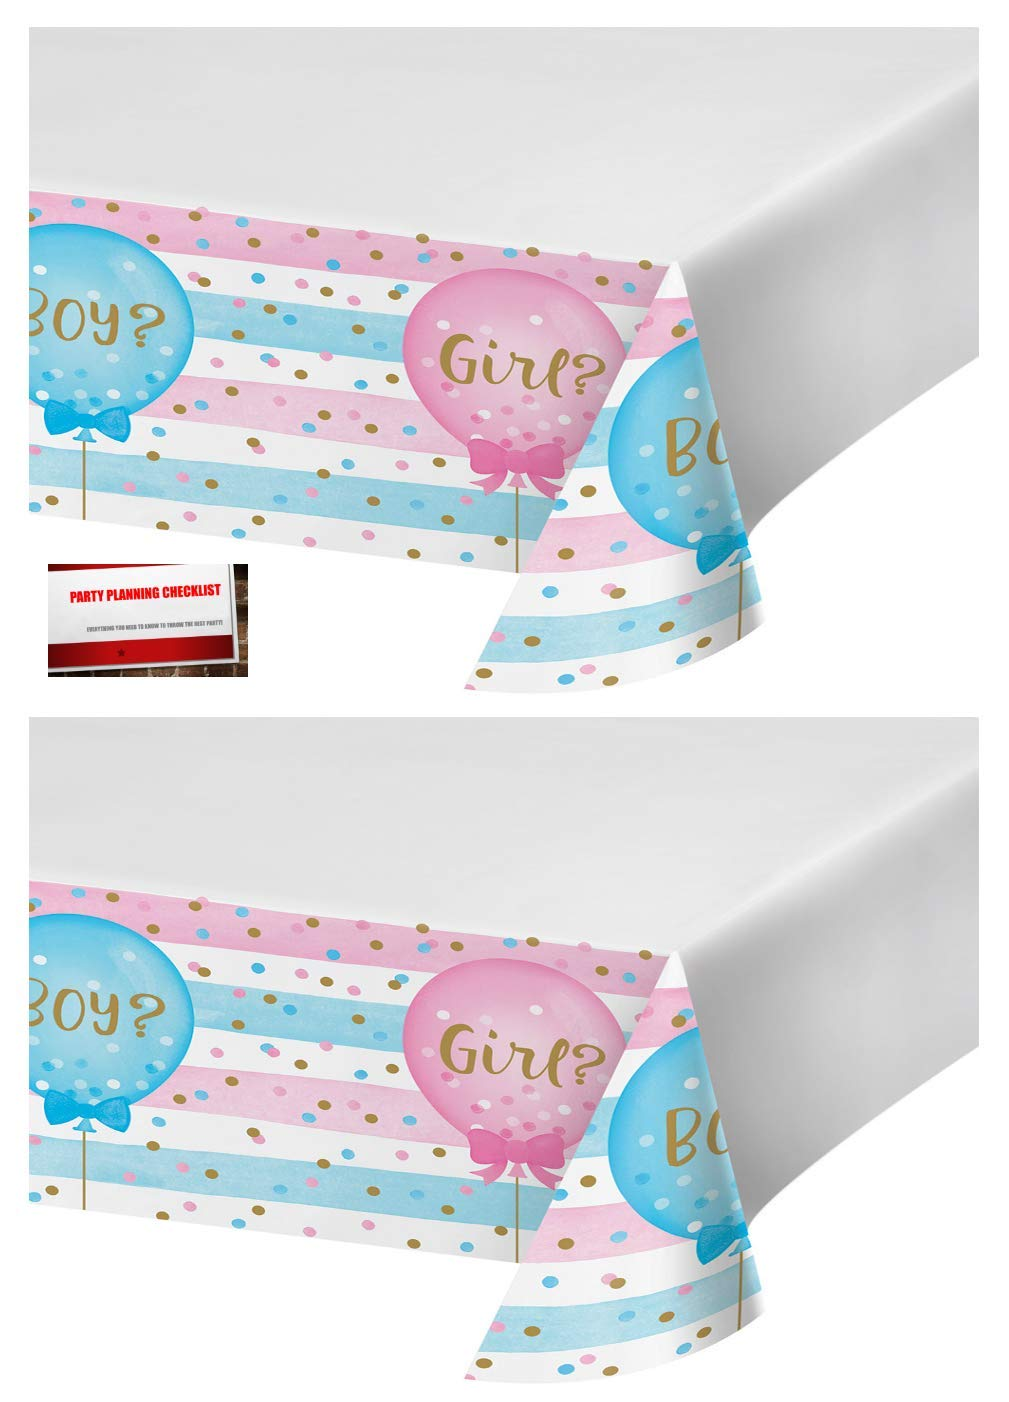 2 Pack - Gender Reveal Girl or Boy Bow or Bow Tie Party Plastic Table Cover 54 x 102 Inches (Plus Party Planning Checklist by Mikes Super Store)